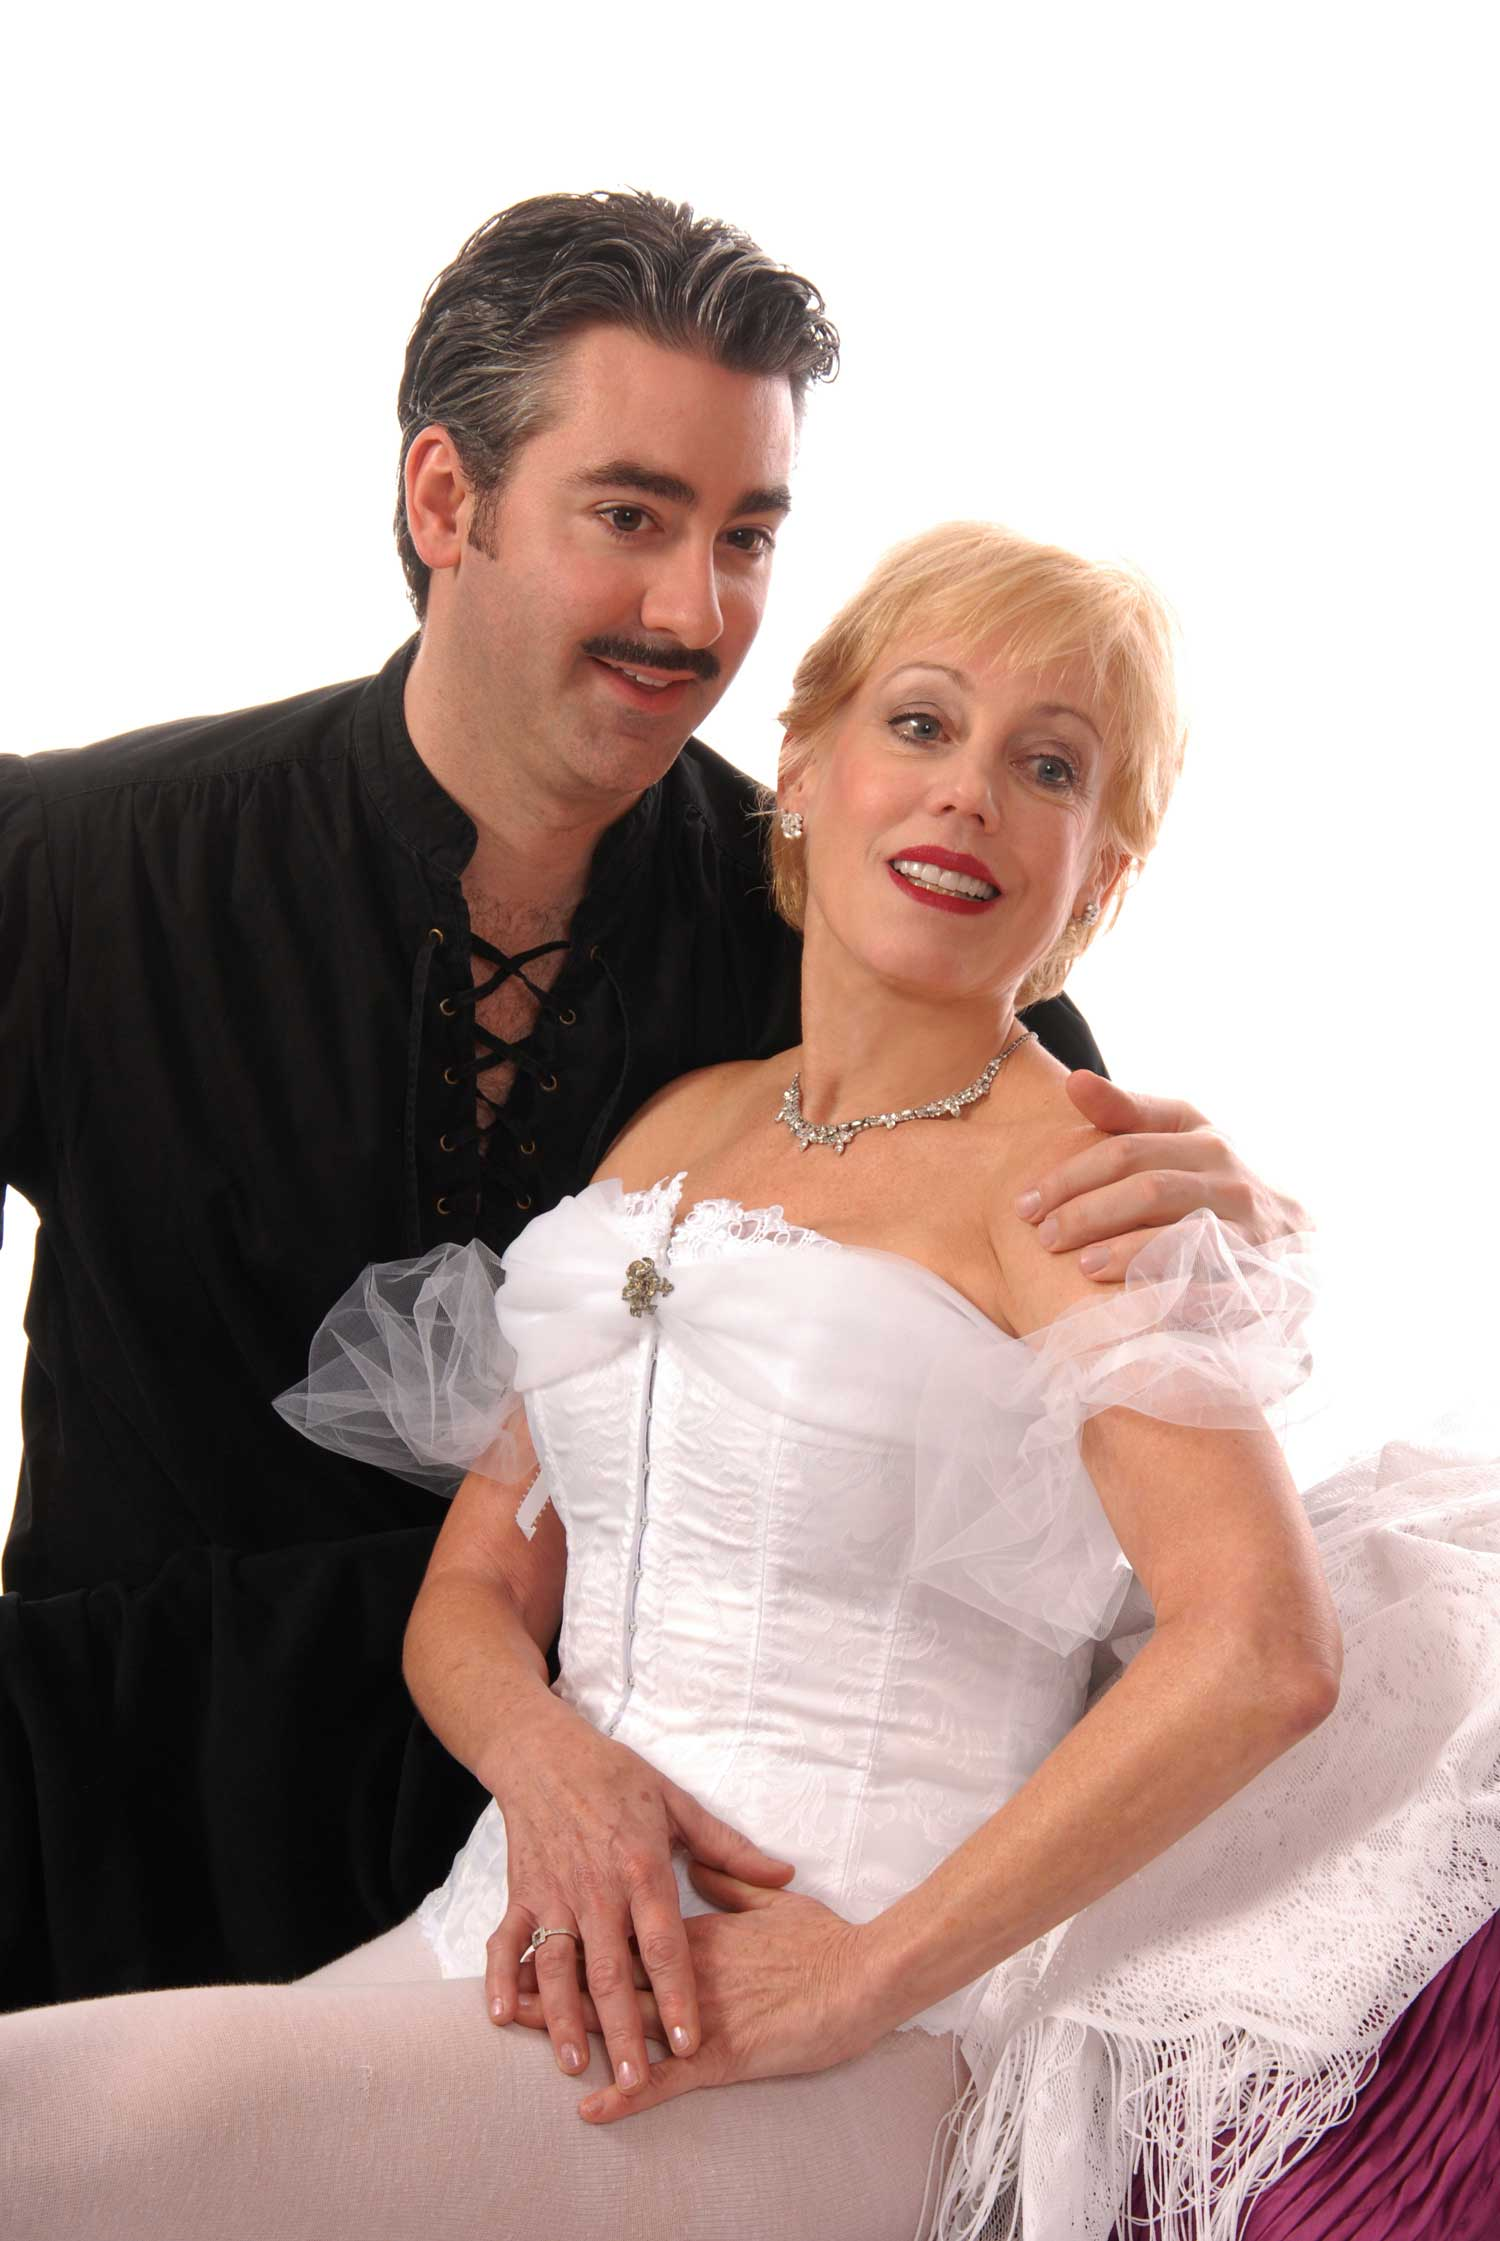 Matthew Hayward and Cherie Price in Grand Hotel at Lakewood Theatre Company, Jan 11 - Feb. 17, 2013